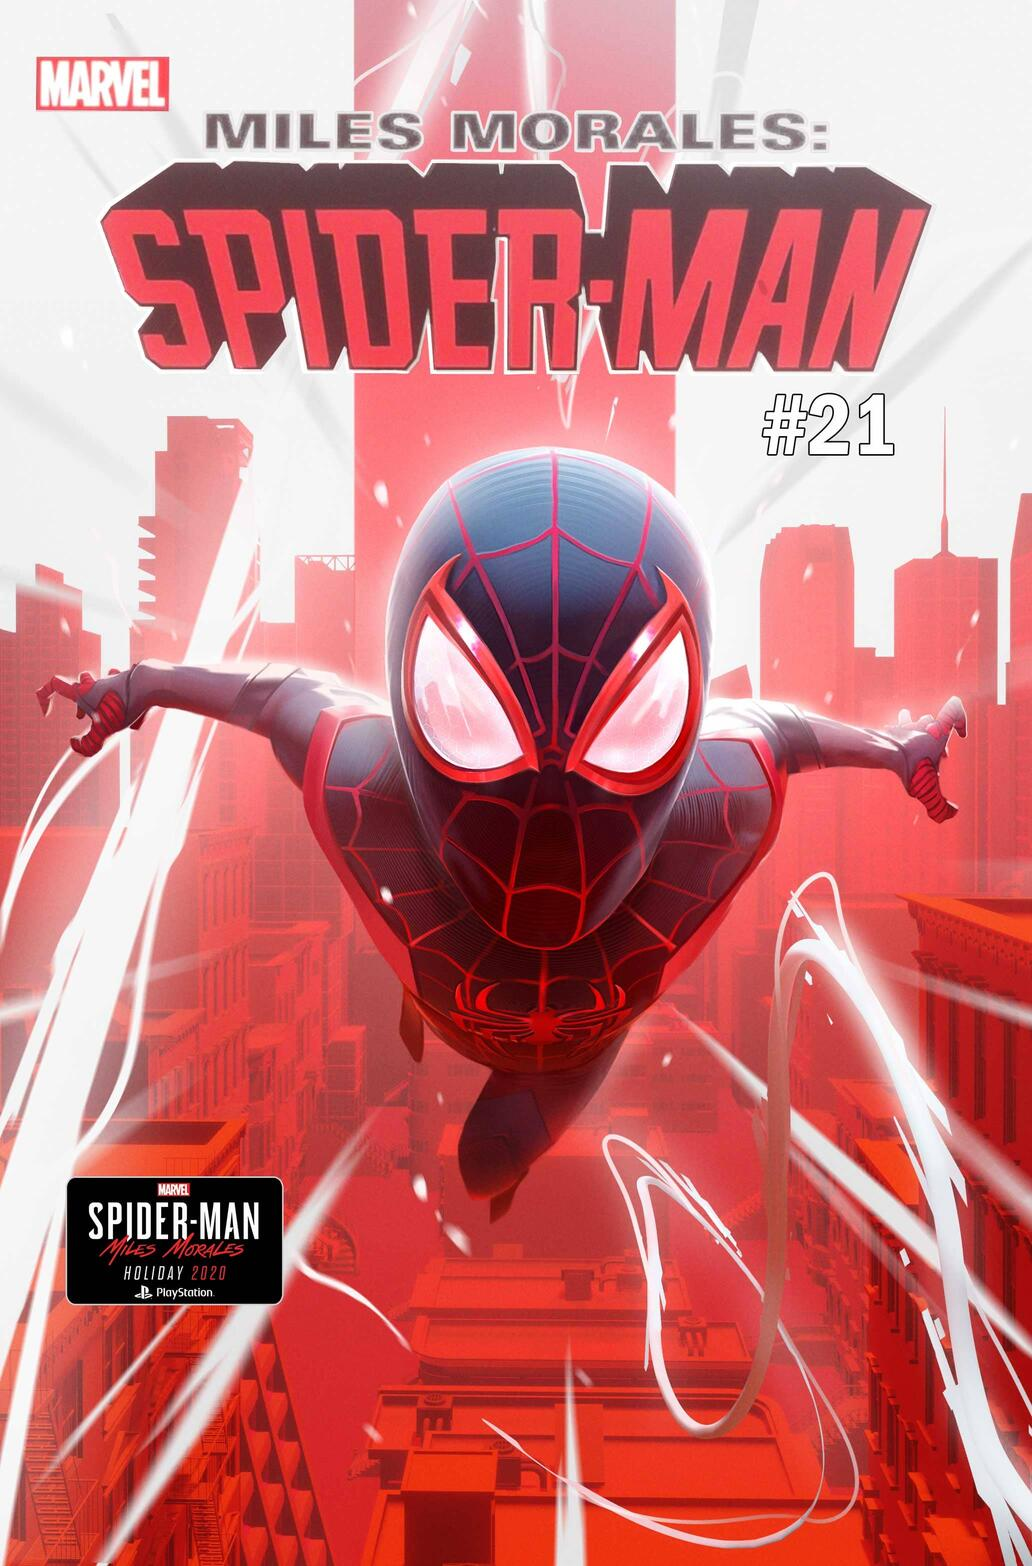 MILES MORALES: SPIDER-MAN #21 cover by Insomniac Games senior concept artist Nicholas Schumaker